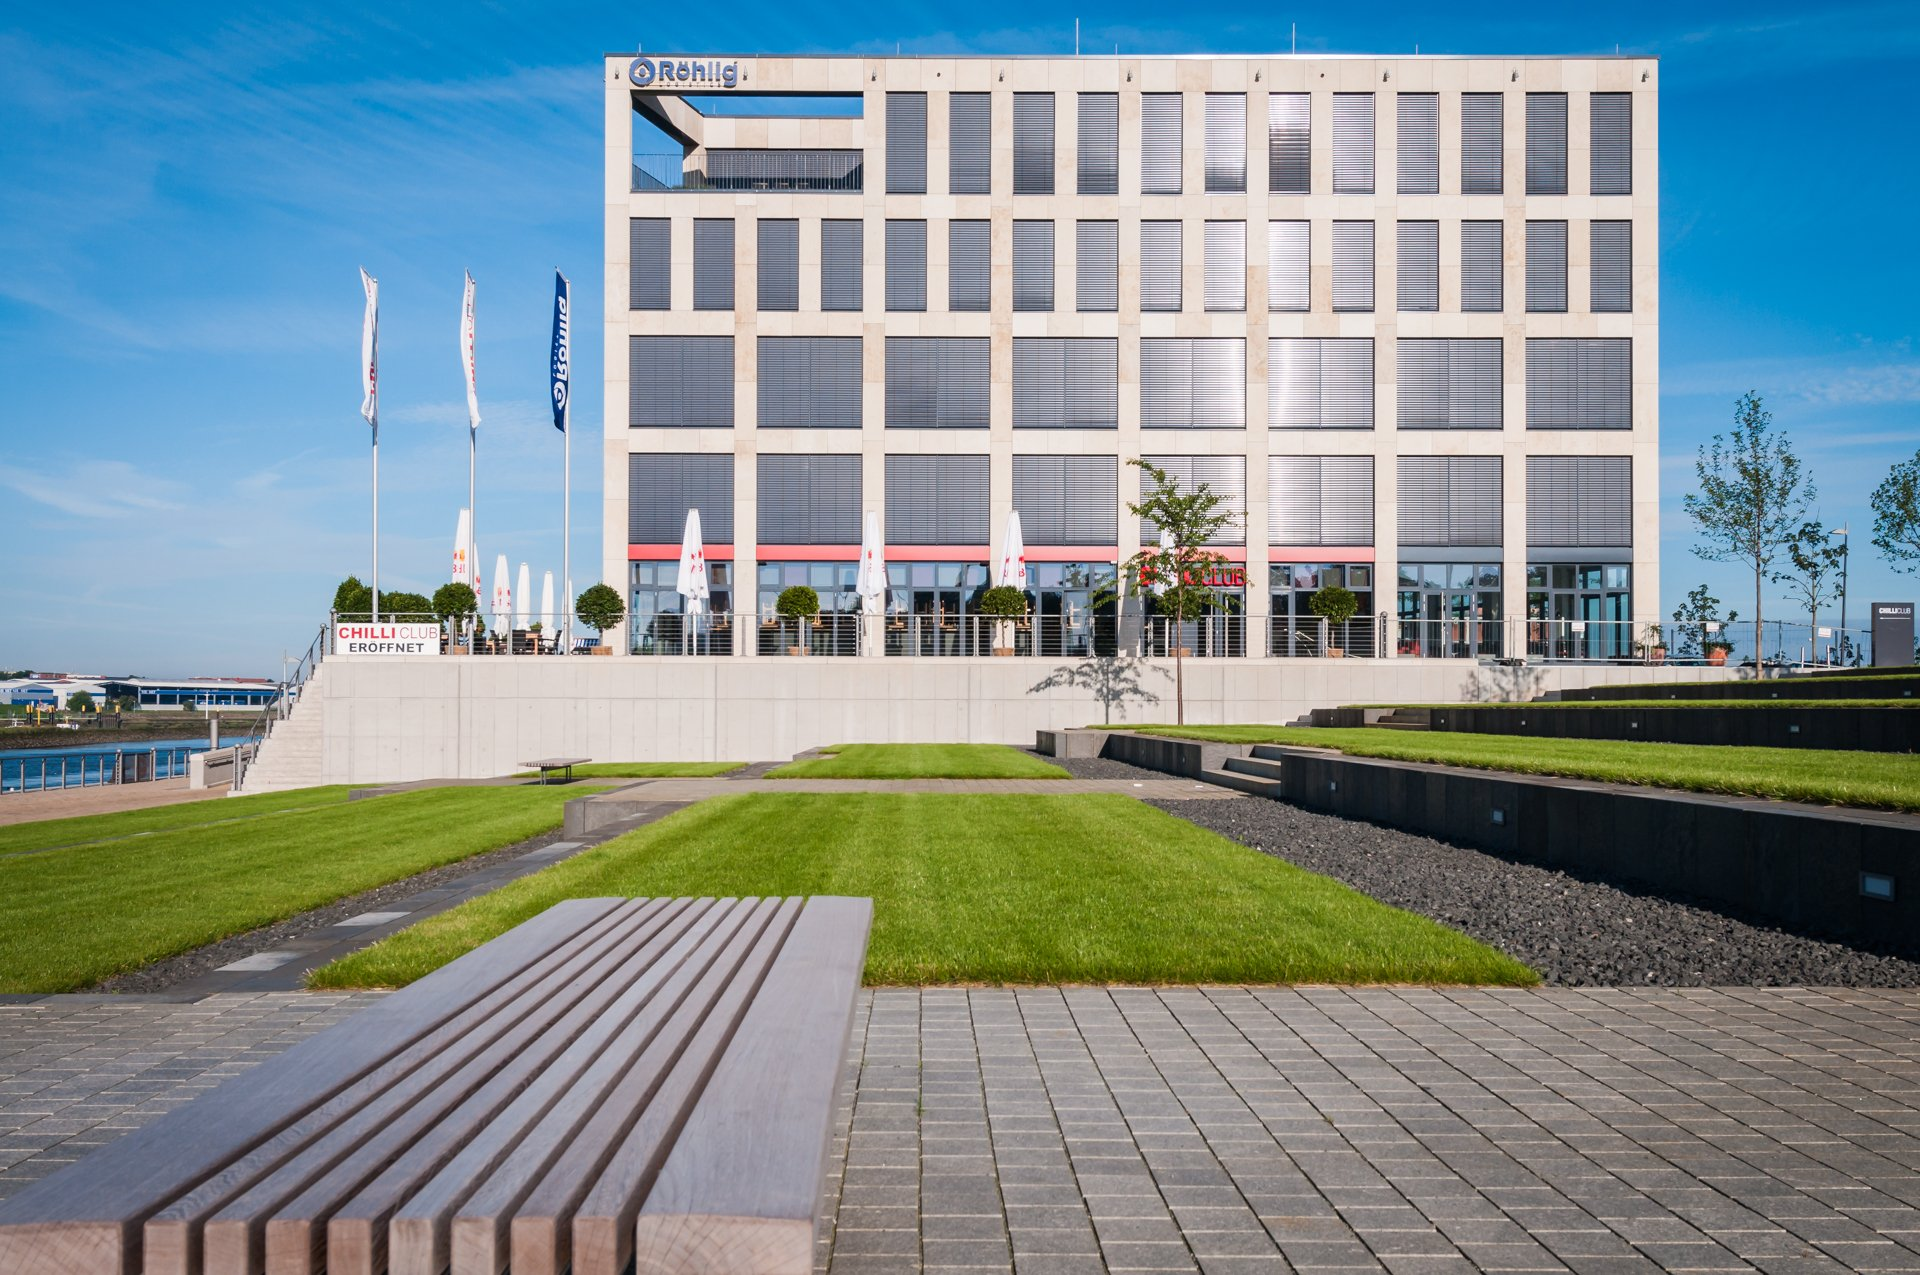 The Roehlig Logistics GmbH & Co. KG building is located directly on the River Weser in Bremen's Überseestadt